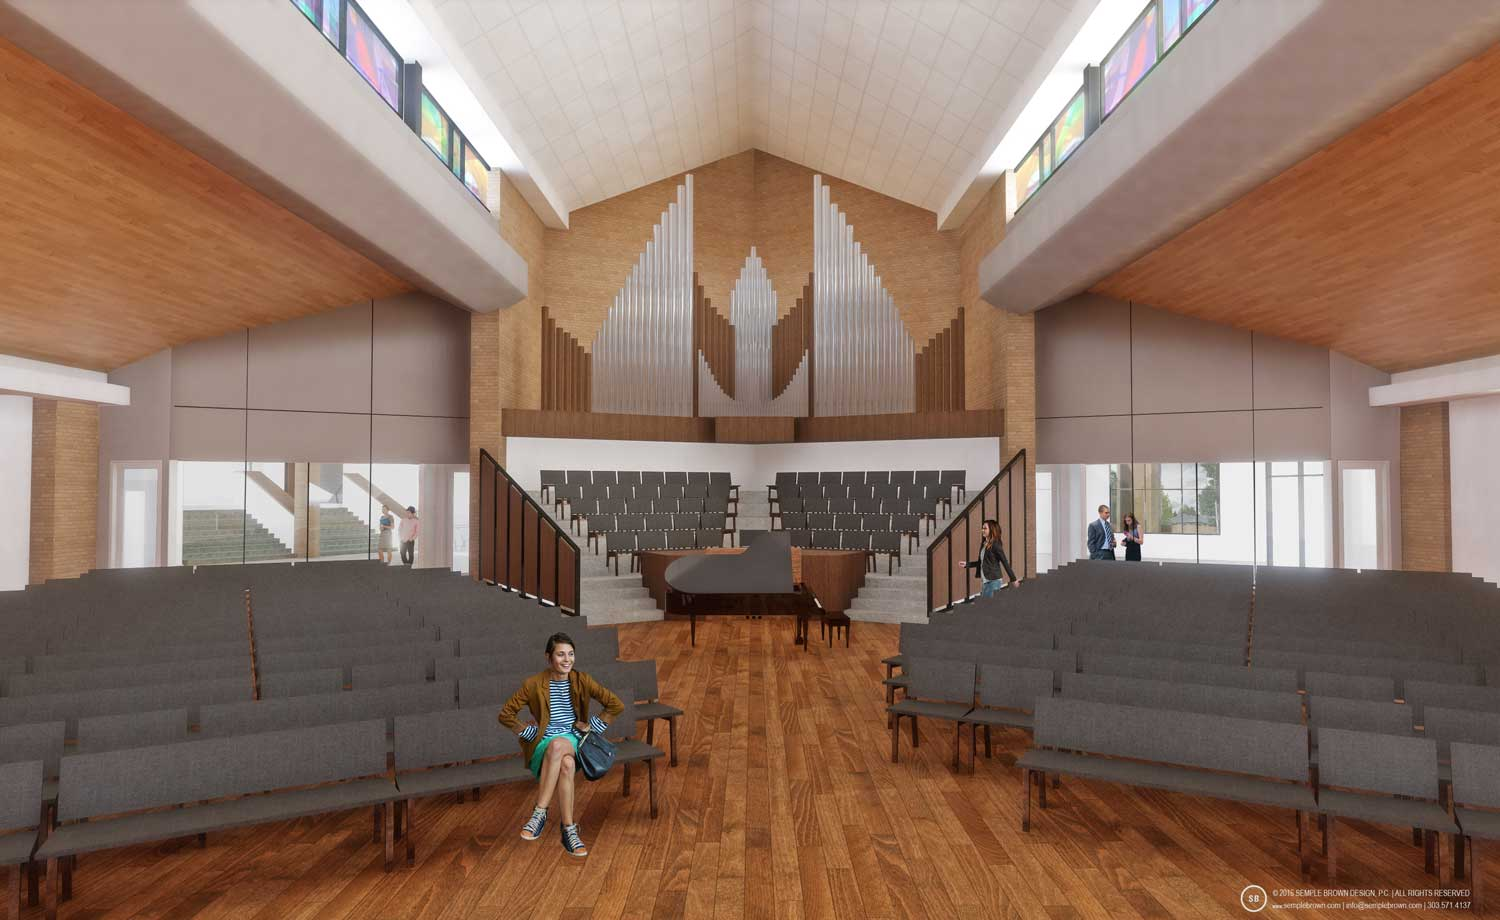 Proposed Wellshire Church Sanctuary Interior, looking West with wood ceiling